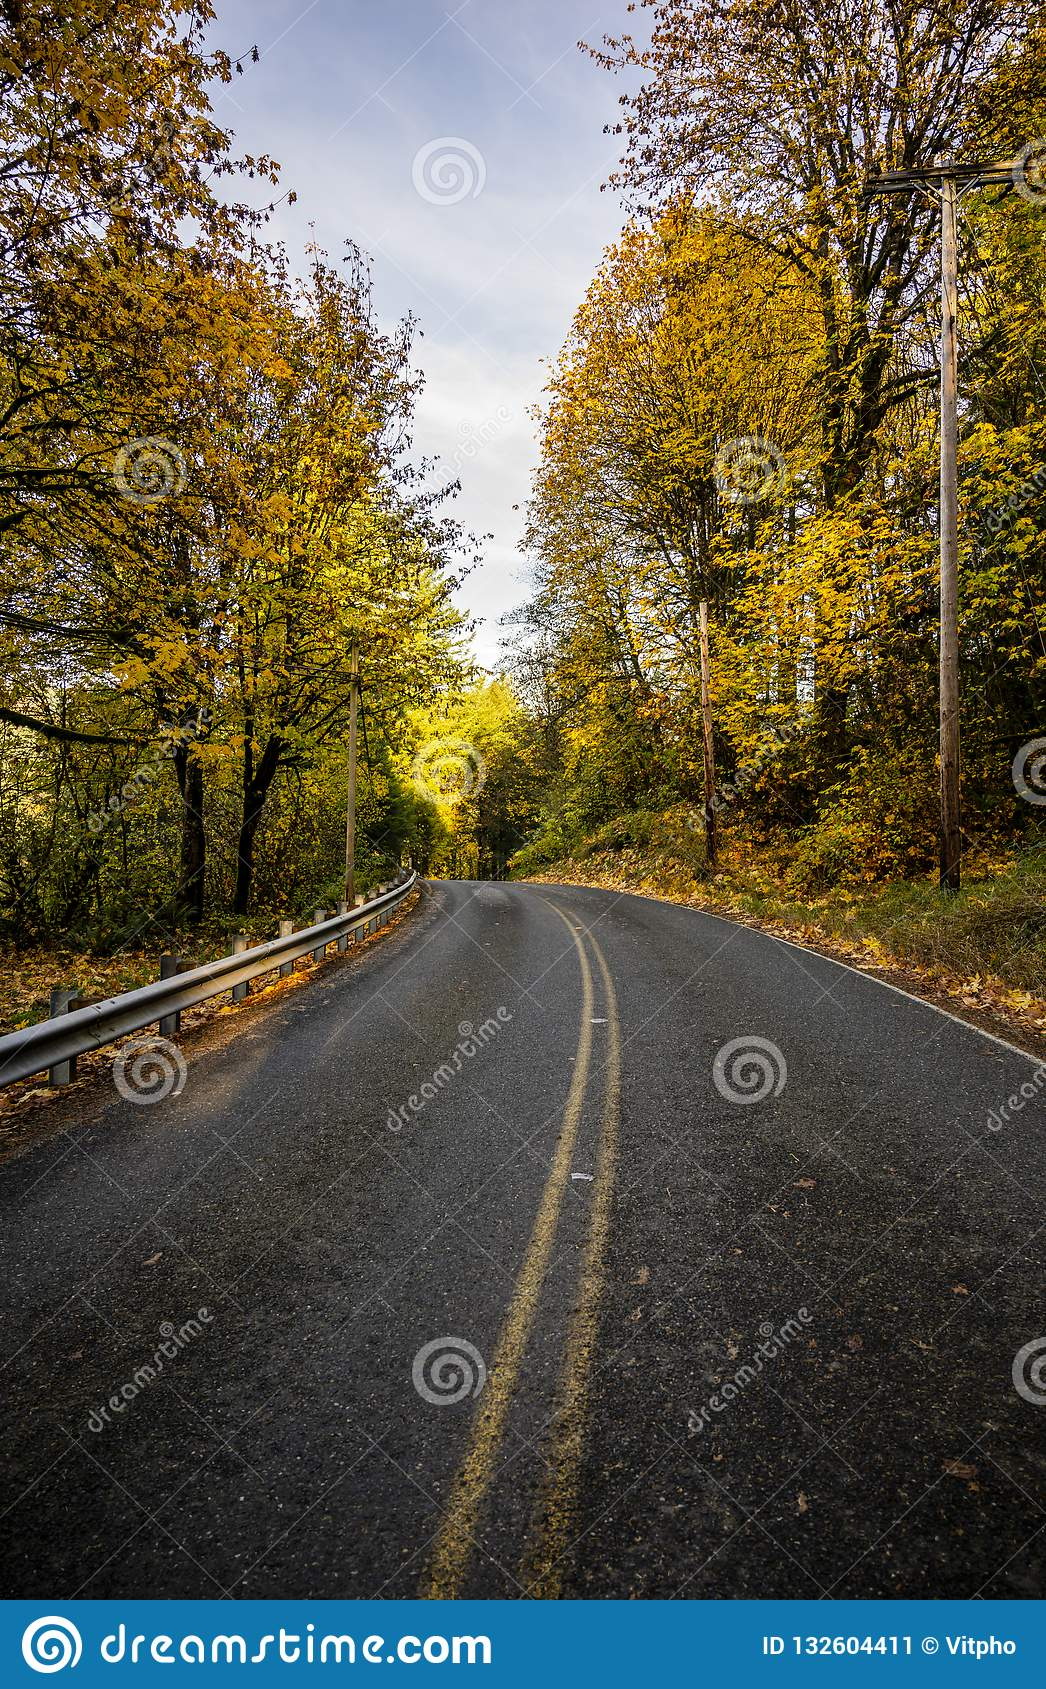 Winding Road Along Autumn Forest Stock Image Image Of Cycle Love